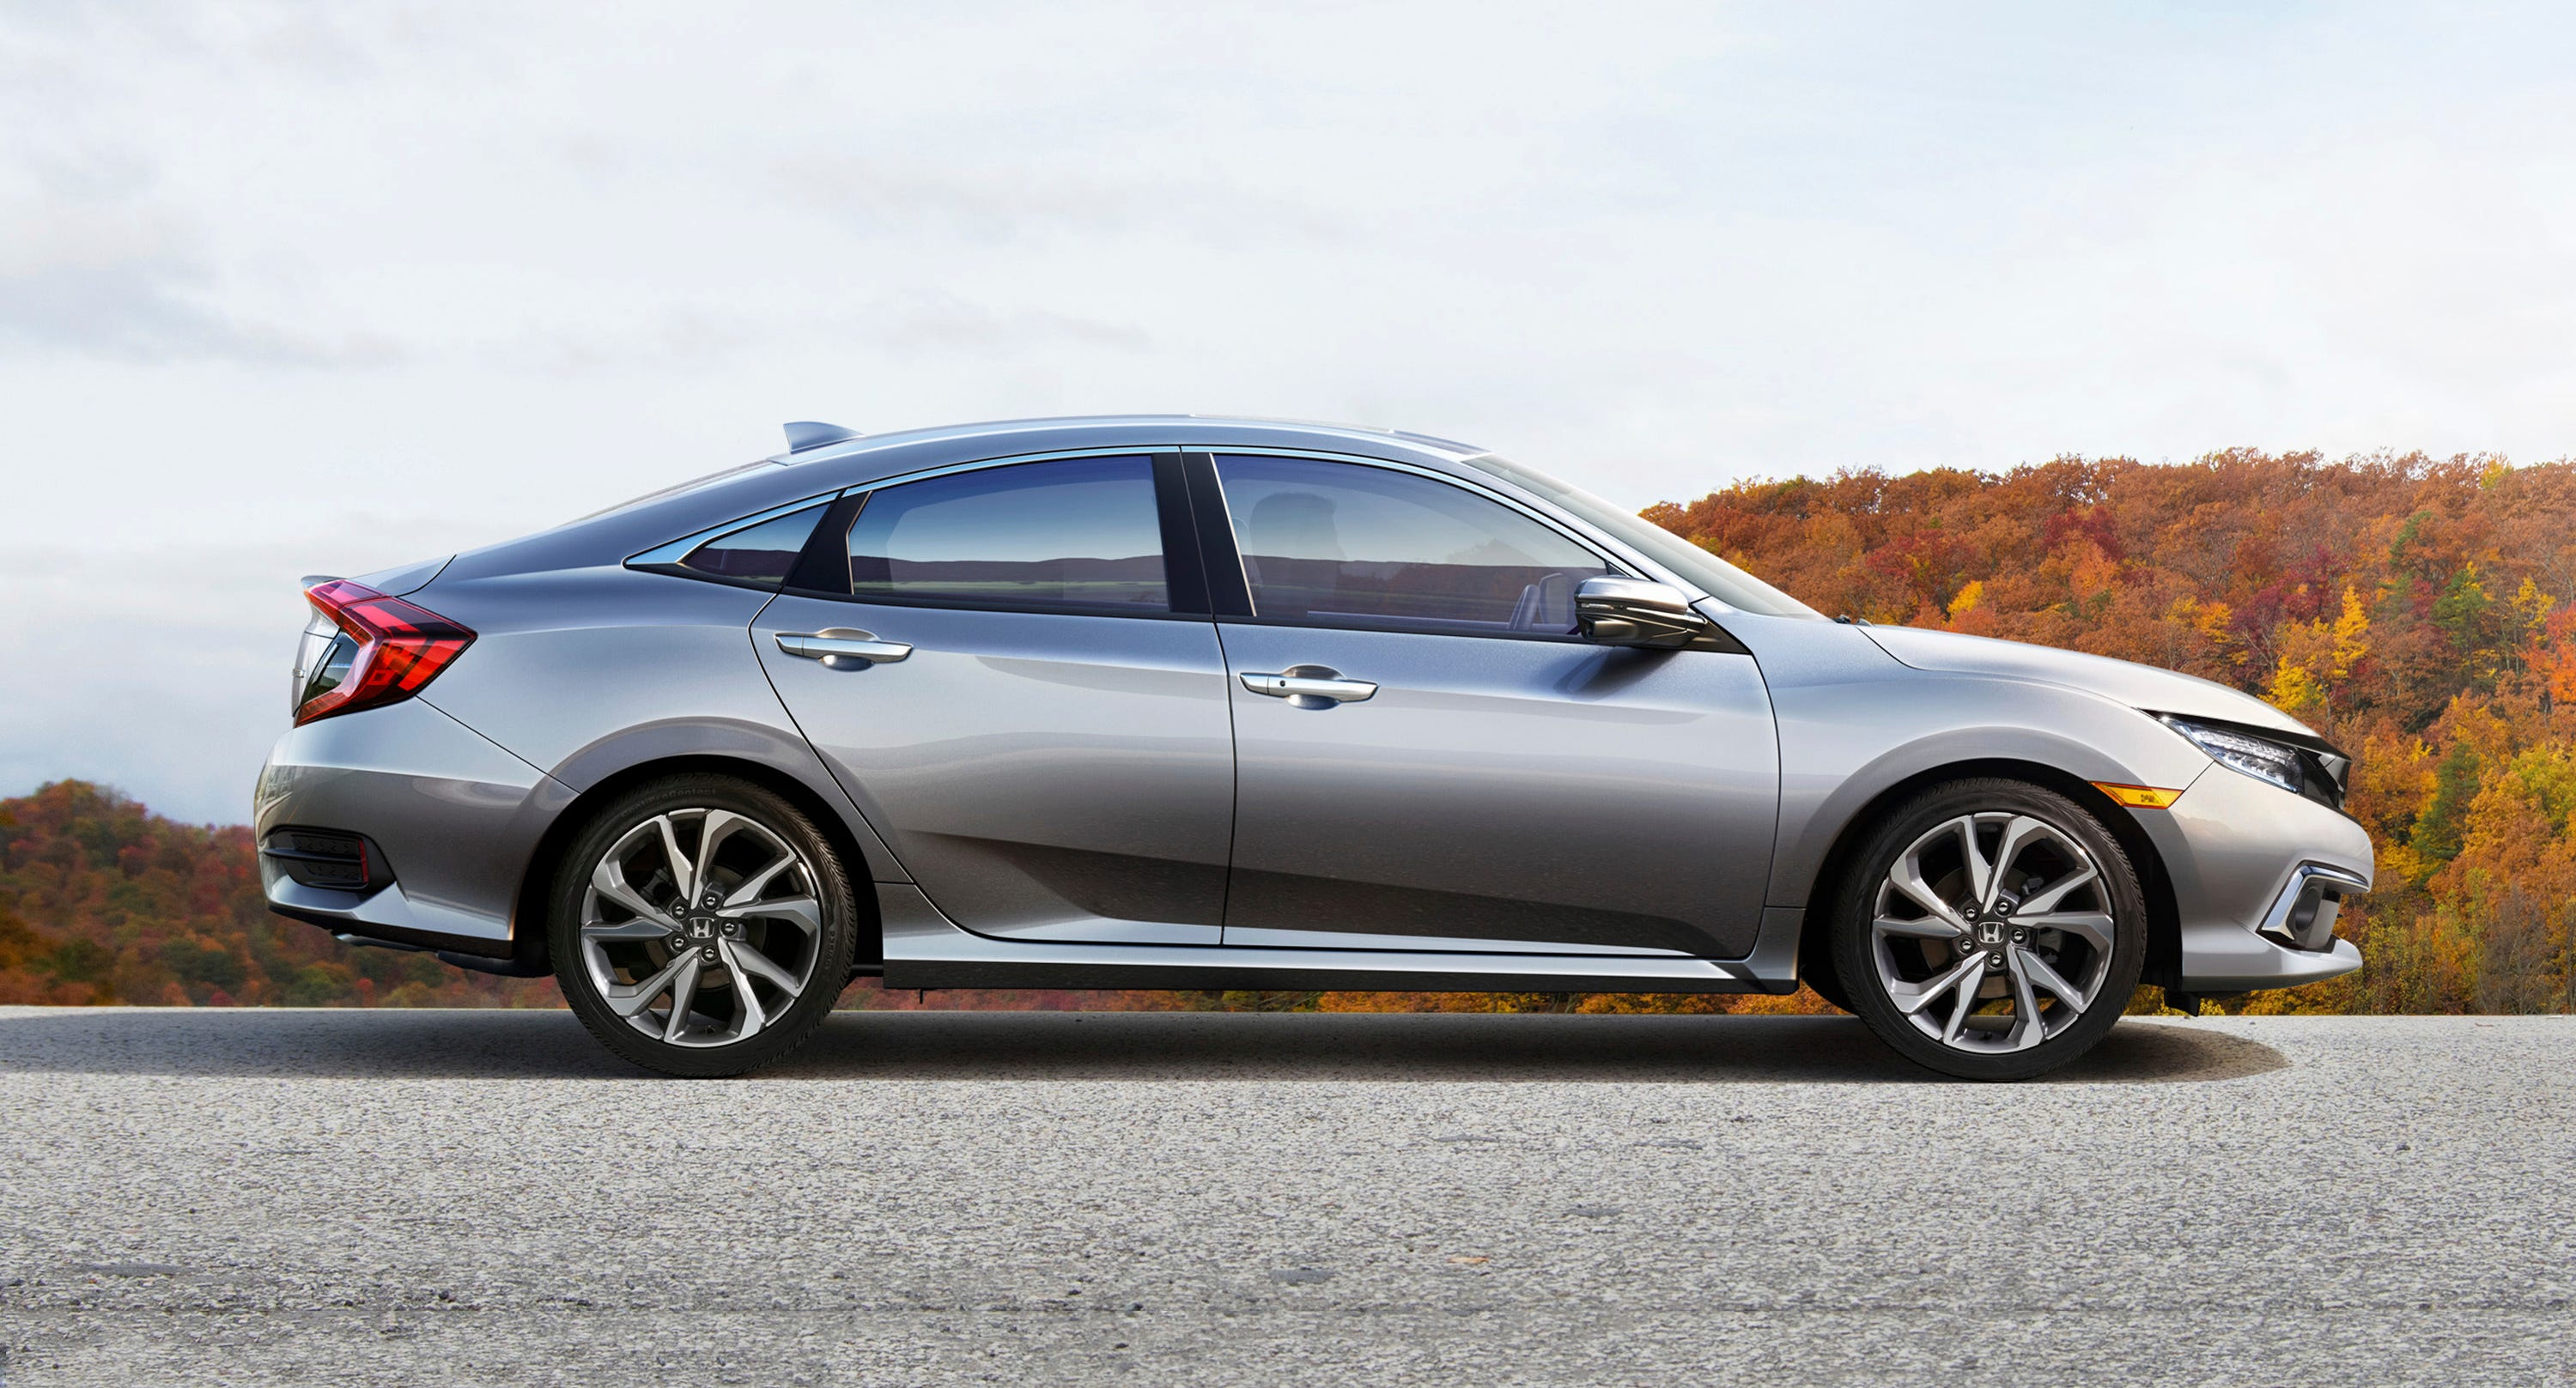 This undated photo provided by Honda shows the 2019 Honda Civic. The Civic is a perennial favorite, and for good reason. Its spacious cabin fits four adults with no problem; even tall passengers can find a comfortable seating position in back. We also like the Civic's entertaining performance and wide range of available body styles. (Courtesy of American Honda Motor Co. via AP)